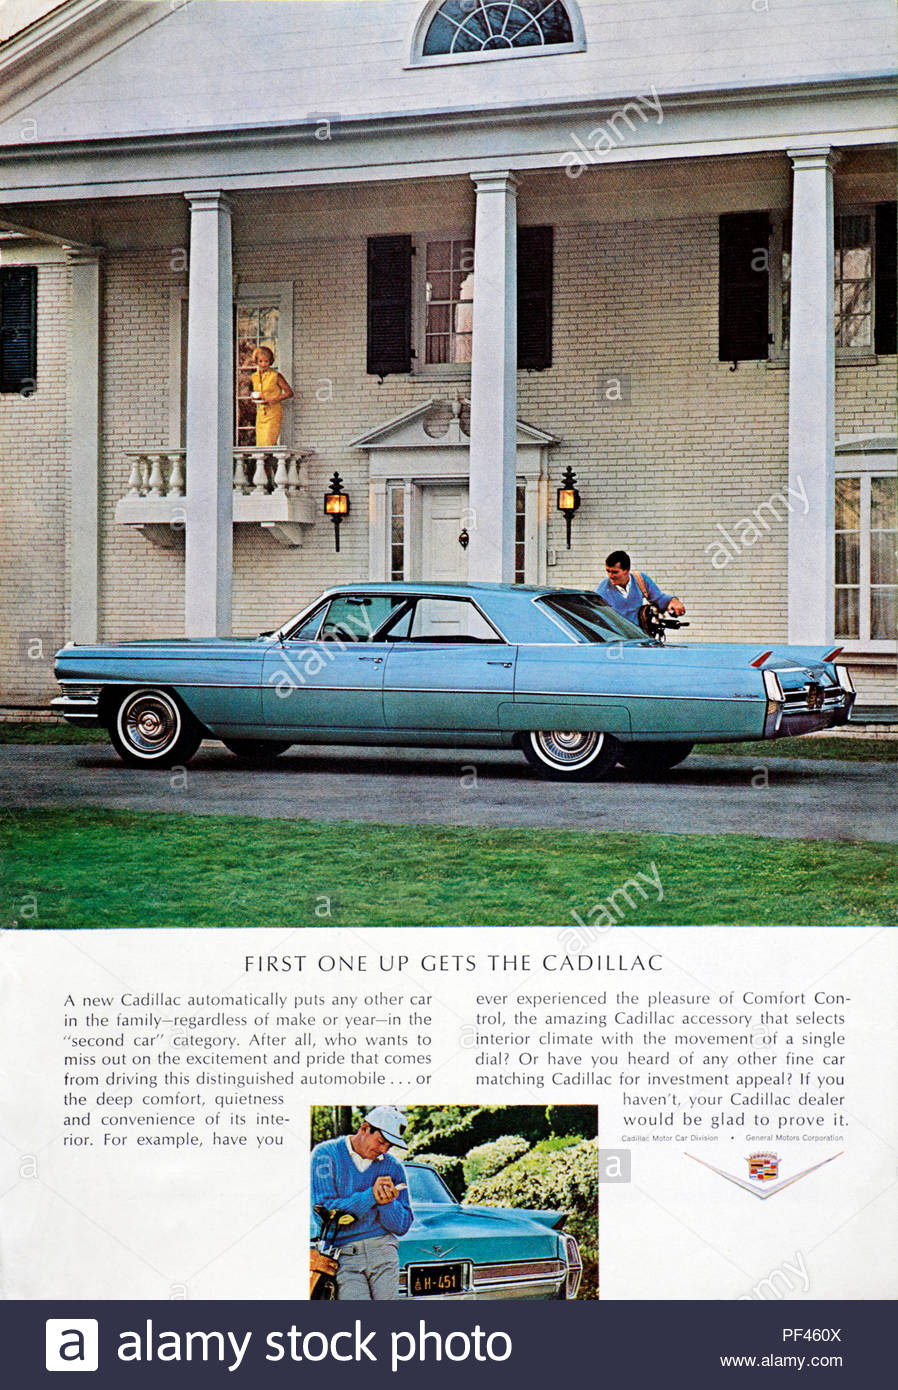 Vintage advertising for the Cadillac Car 1964 - Stock Image